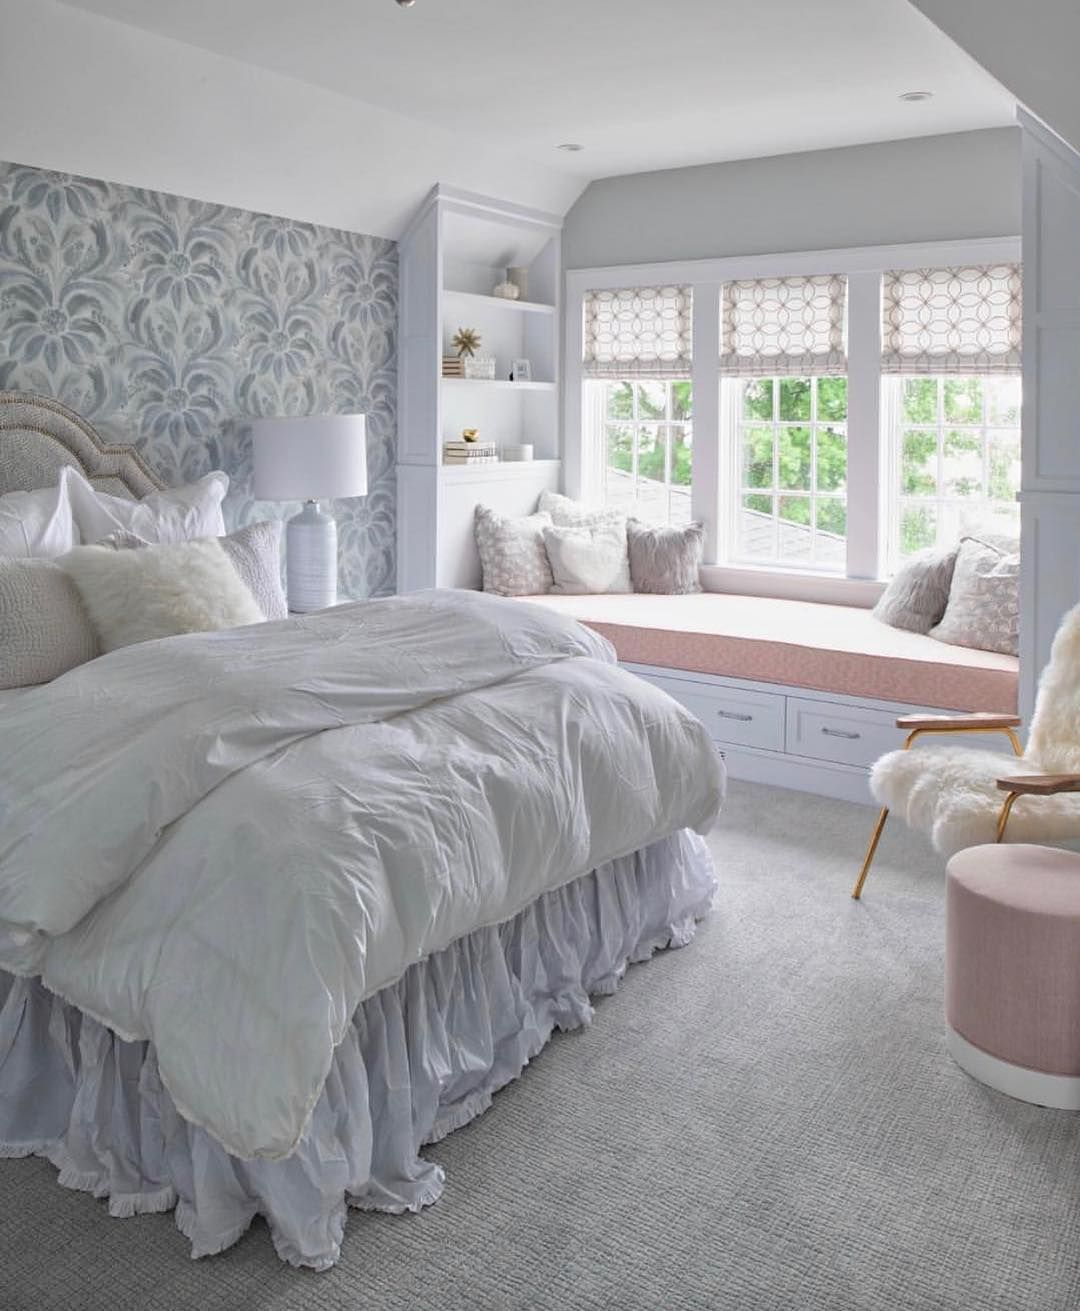 Interior Design Home Decor On Instagram Who Doesn T Love A Good